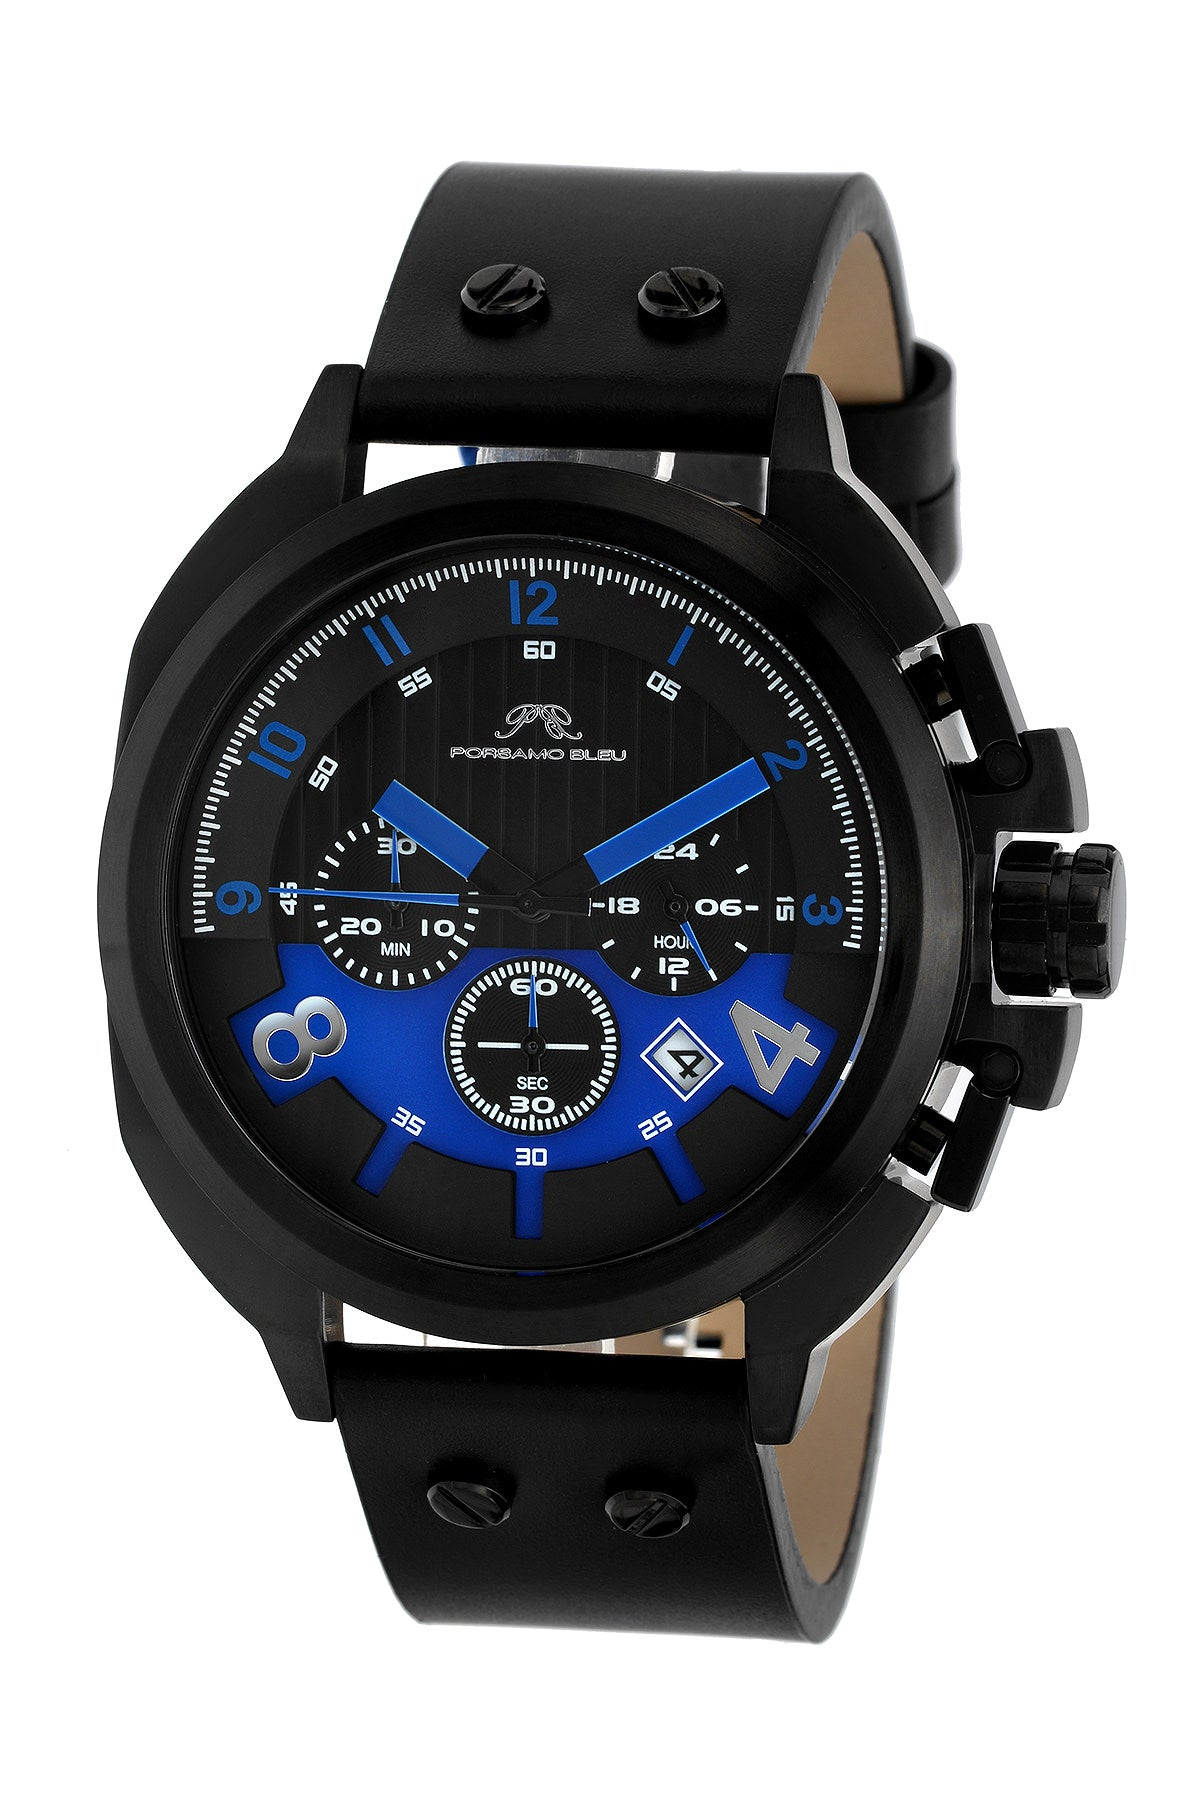 Porsamo Bleu Connor luxury chronograph men's watch, genuine leather band, black, blue 421ACOL